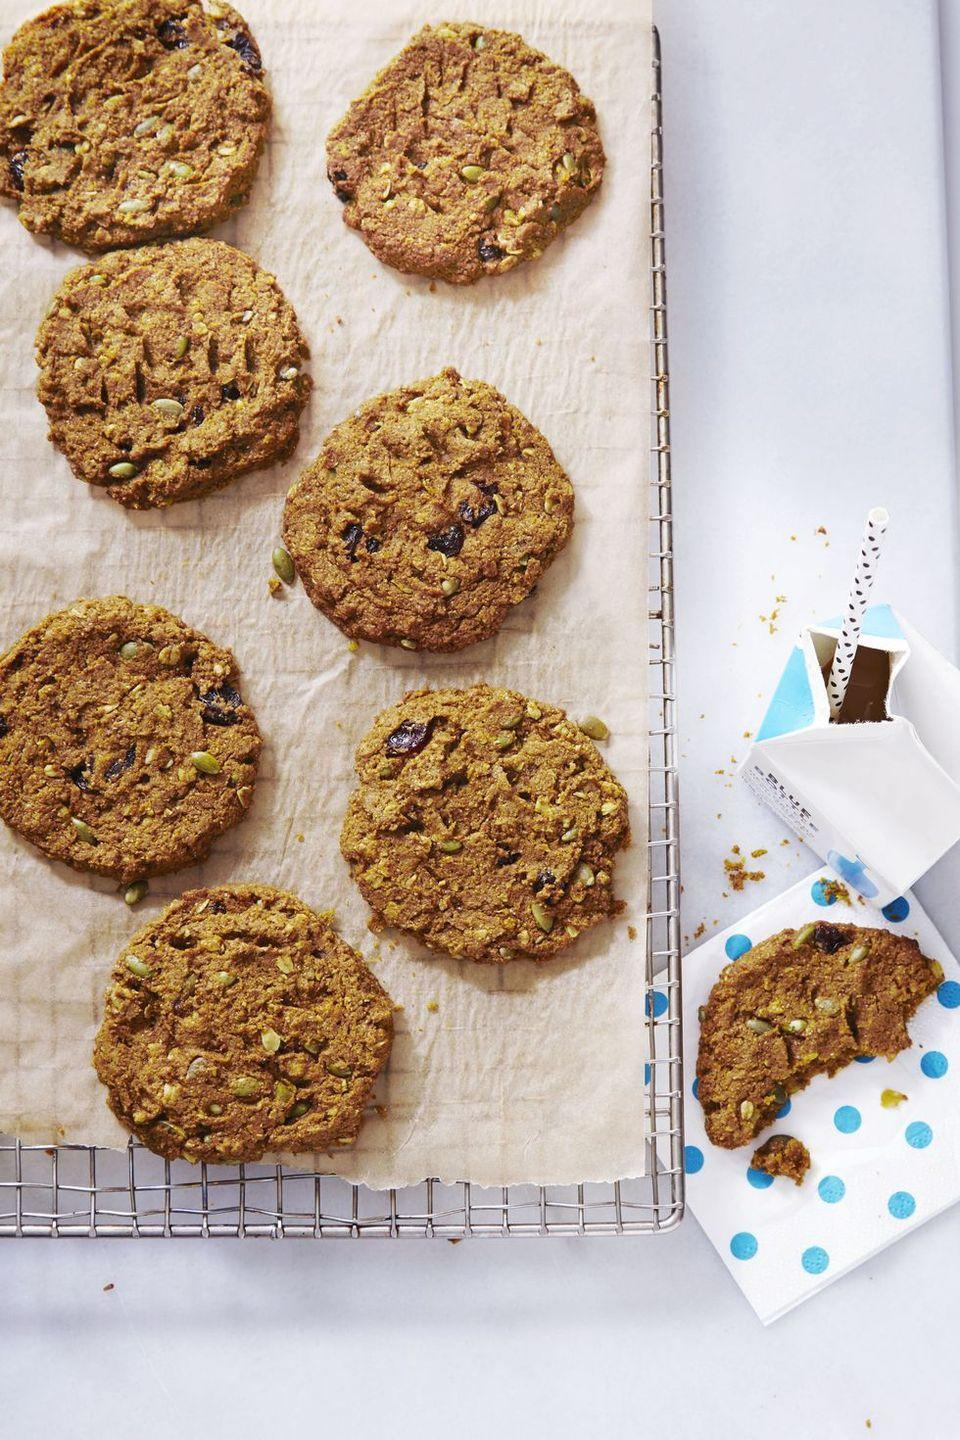 "<p>Allow us to introduce you to the newest member of the ""healthy desserts"" club: These chewy cookies, packed with protein <em>and </em>fiber.</p><p><em><a href=""https://www.goodhousekeeping.com/food-recipes/dessert/a35274/pumpkin-cherry-breakfast-cookies/"" rel=""nofollow noopener"" target=""_blank"" data-ylk=""slk:Get the recipe for Pumpkin-Cherry Breakfast Cookies »"" class=""link rapid-noclick-resp"">Get the recipe for Pumpkin-Cherry Breakfast Cookies »</a></em></p><p><strong>RELATED: </strong><a href=""https://www.goodhousekeeping.com/food-recipes/g4546/pumpkin-cookie-recipes/"" rel=""nofollow noopener"" target=""_blank"" data-ylk=""slk:20 Easy Pumpkin Cookies to Make This Fall"" class=""link rapid-noclick-resp"">20 Easy Pumpkin Cookies to Make This Fall</a></p>"